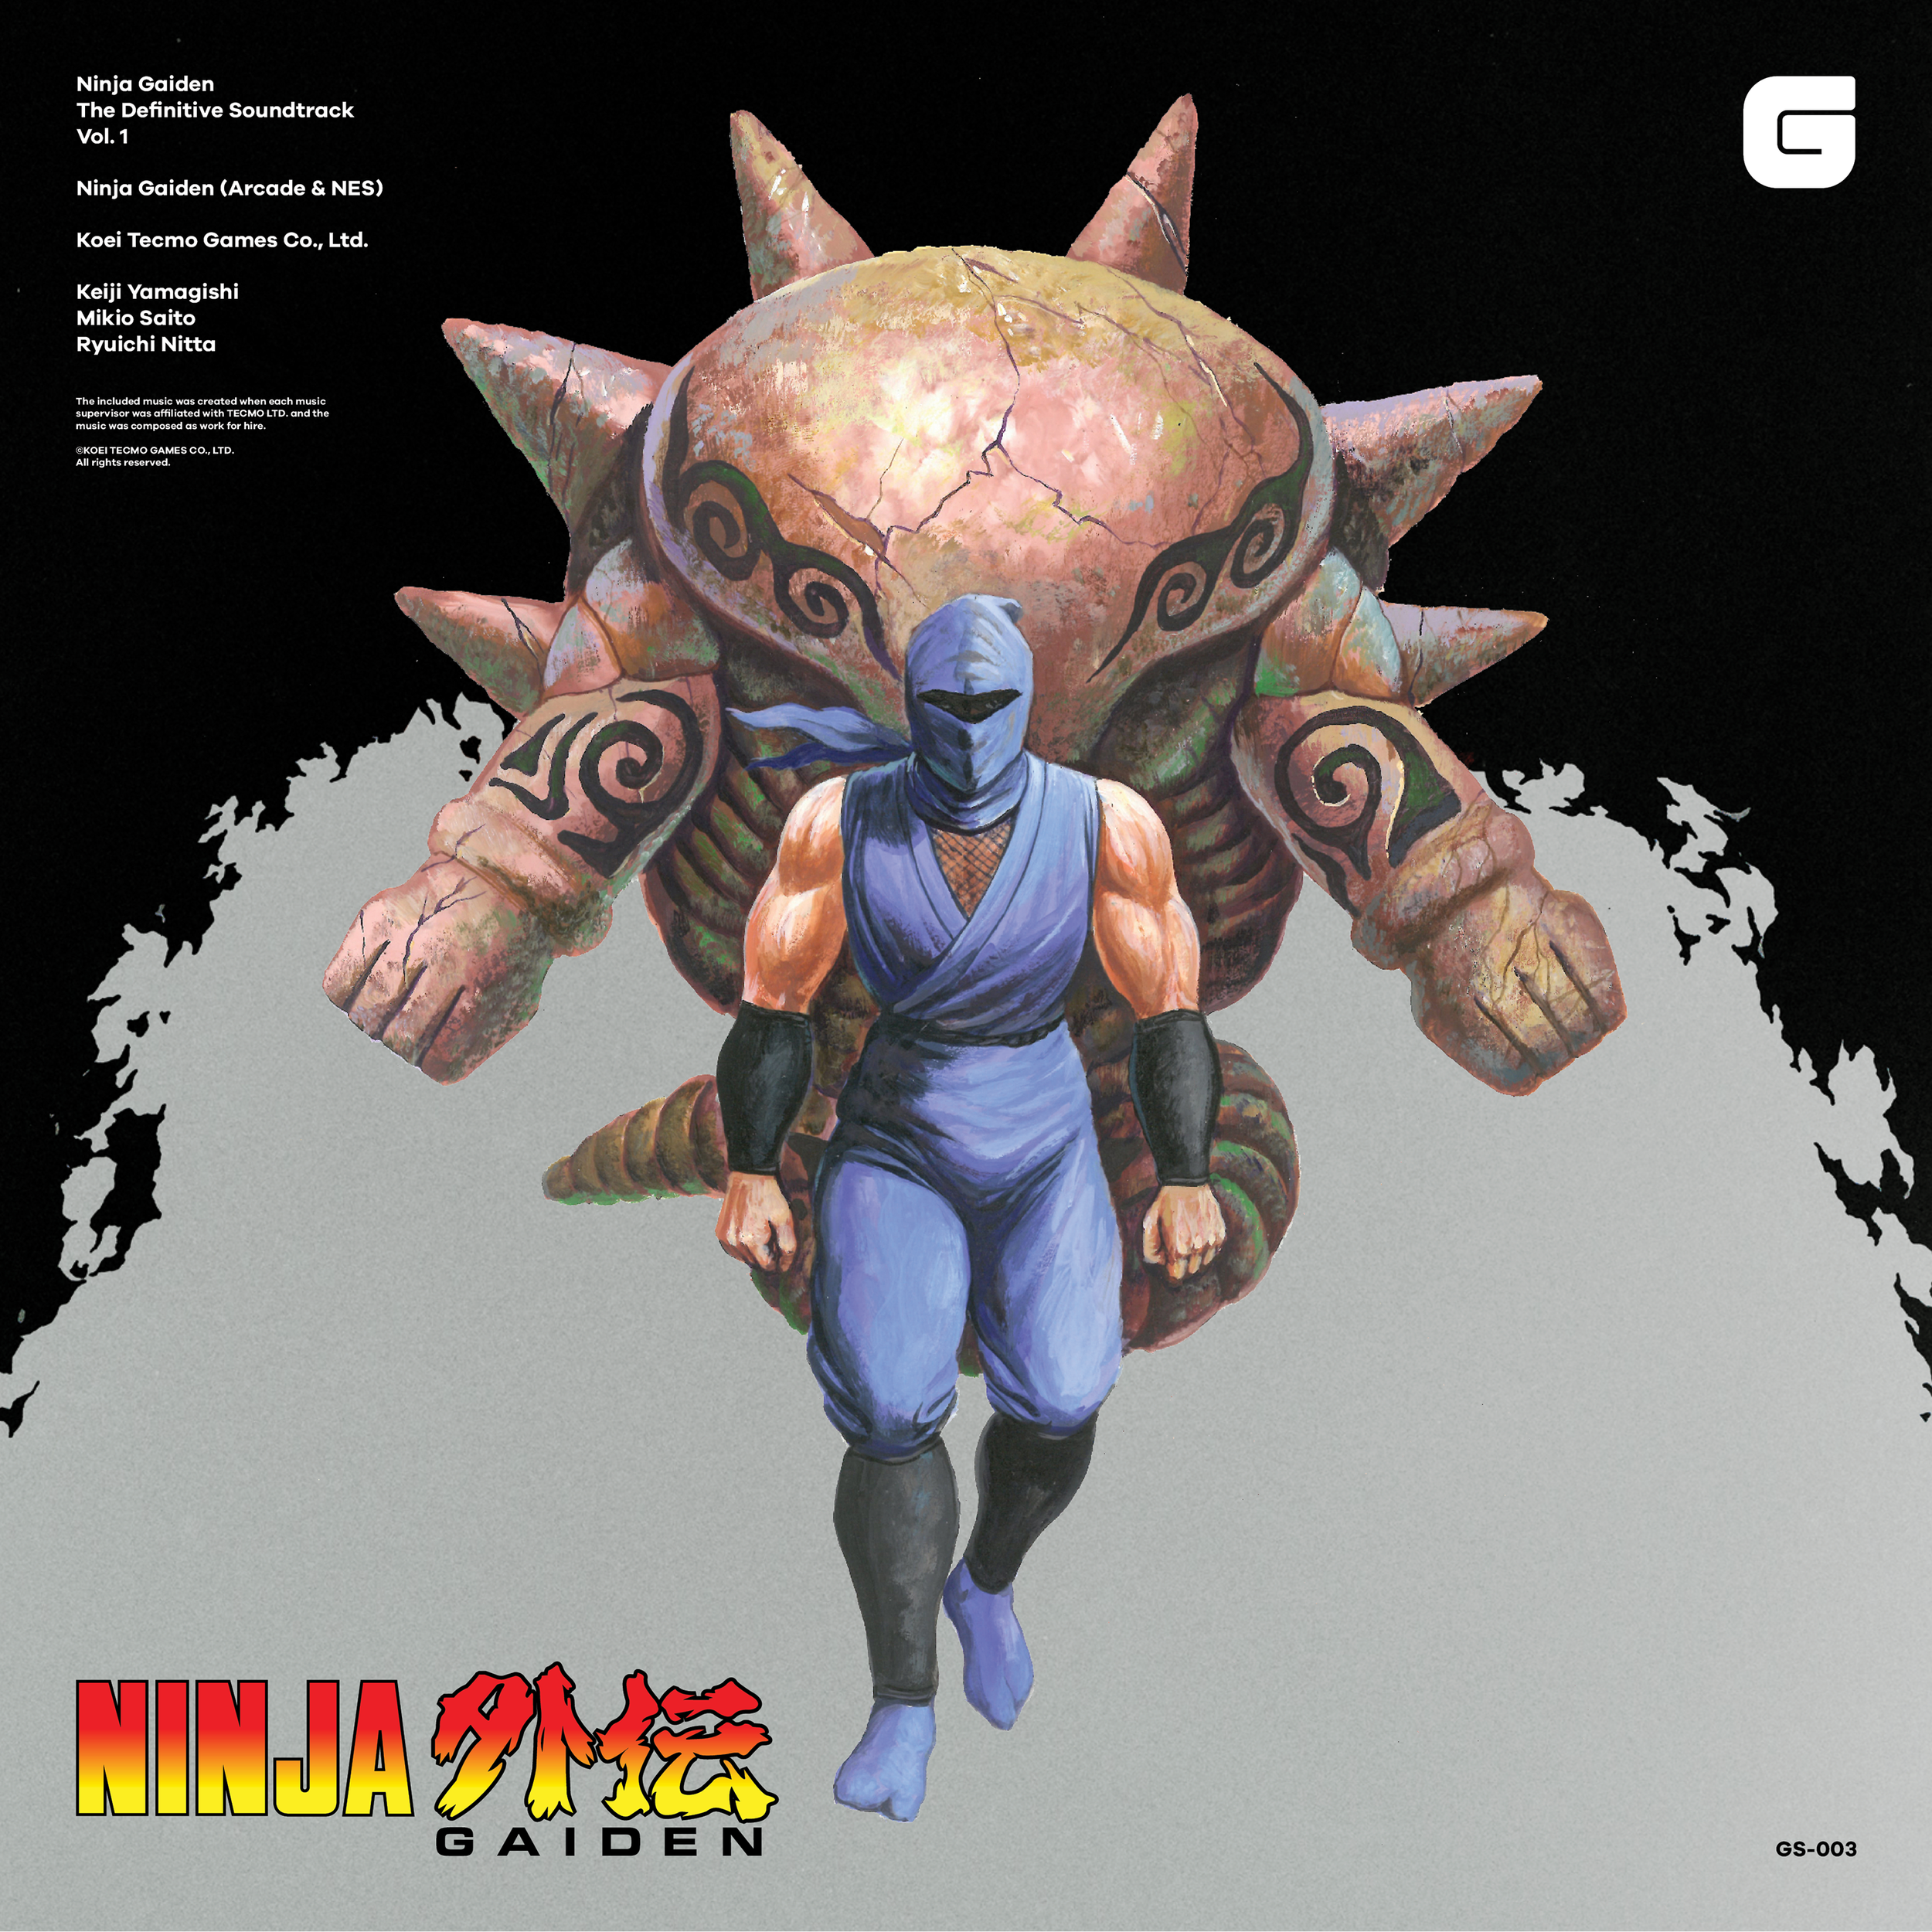 Ninja Gaiden The Definitive Soundtrack Vol. 1   CD: $15 / LP: $35